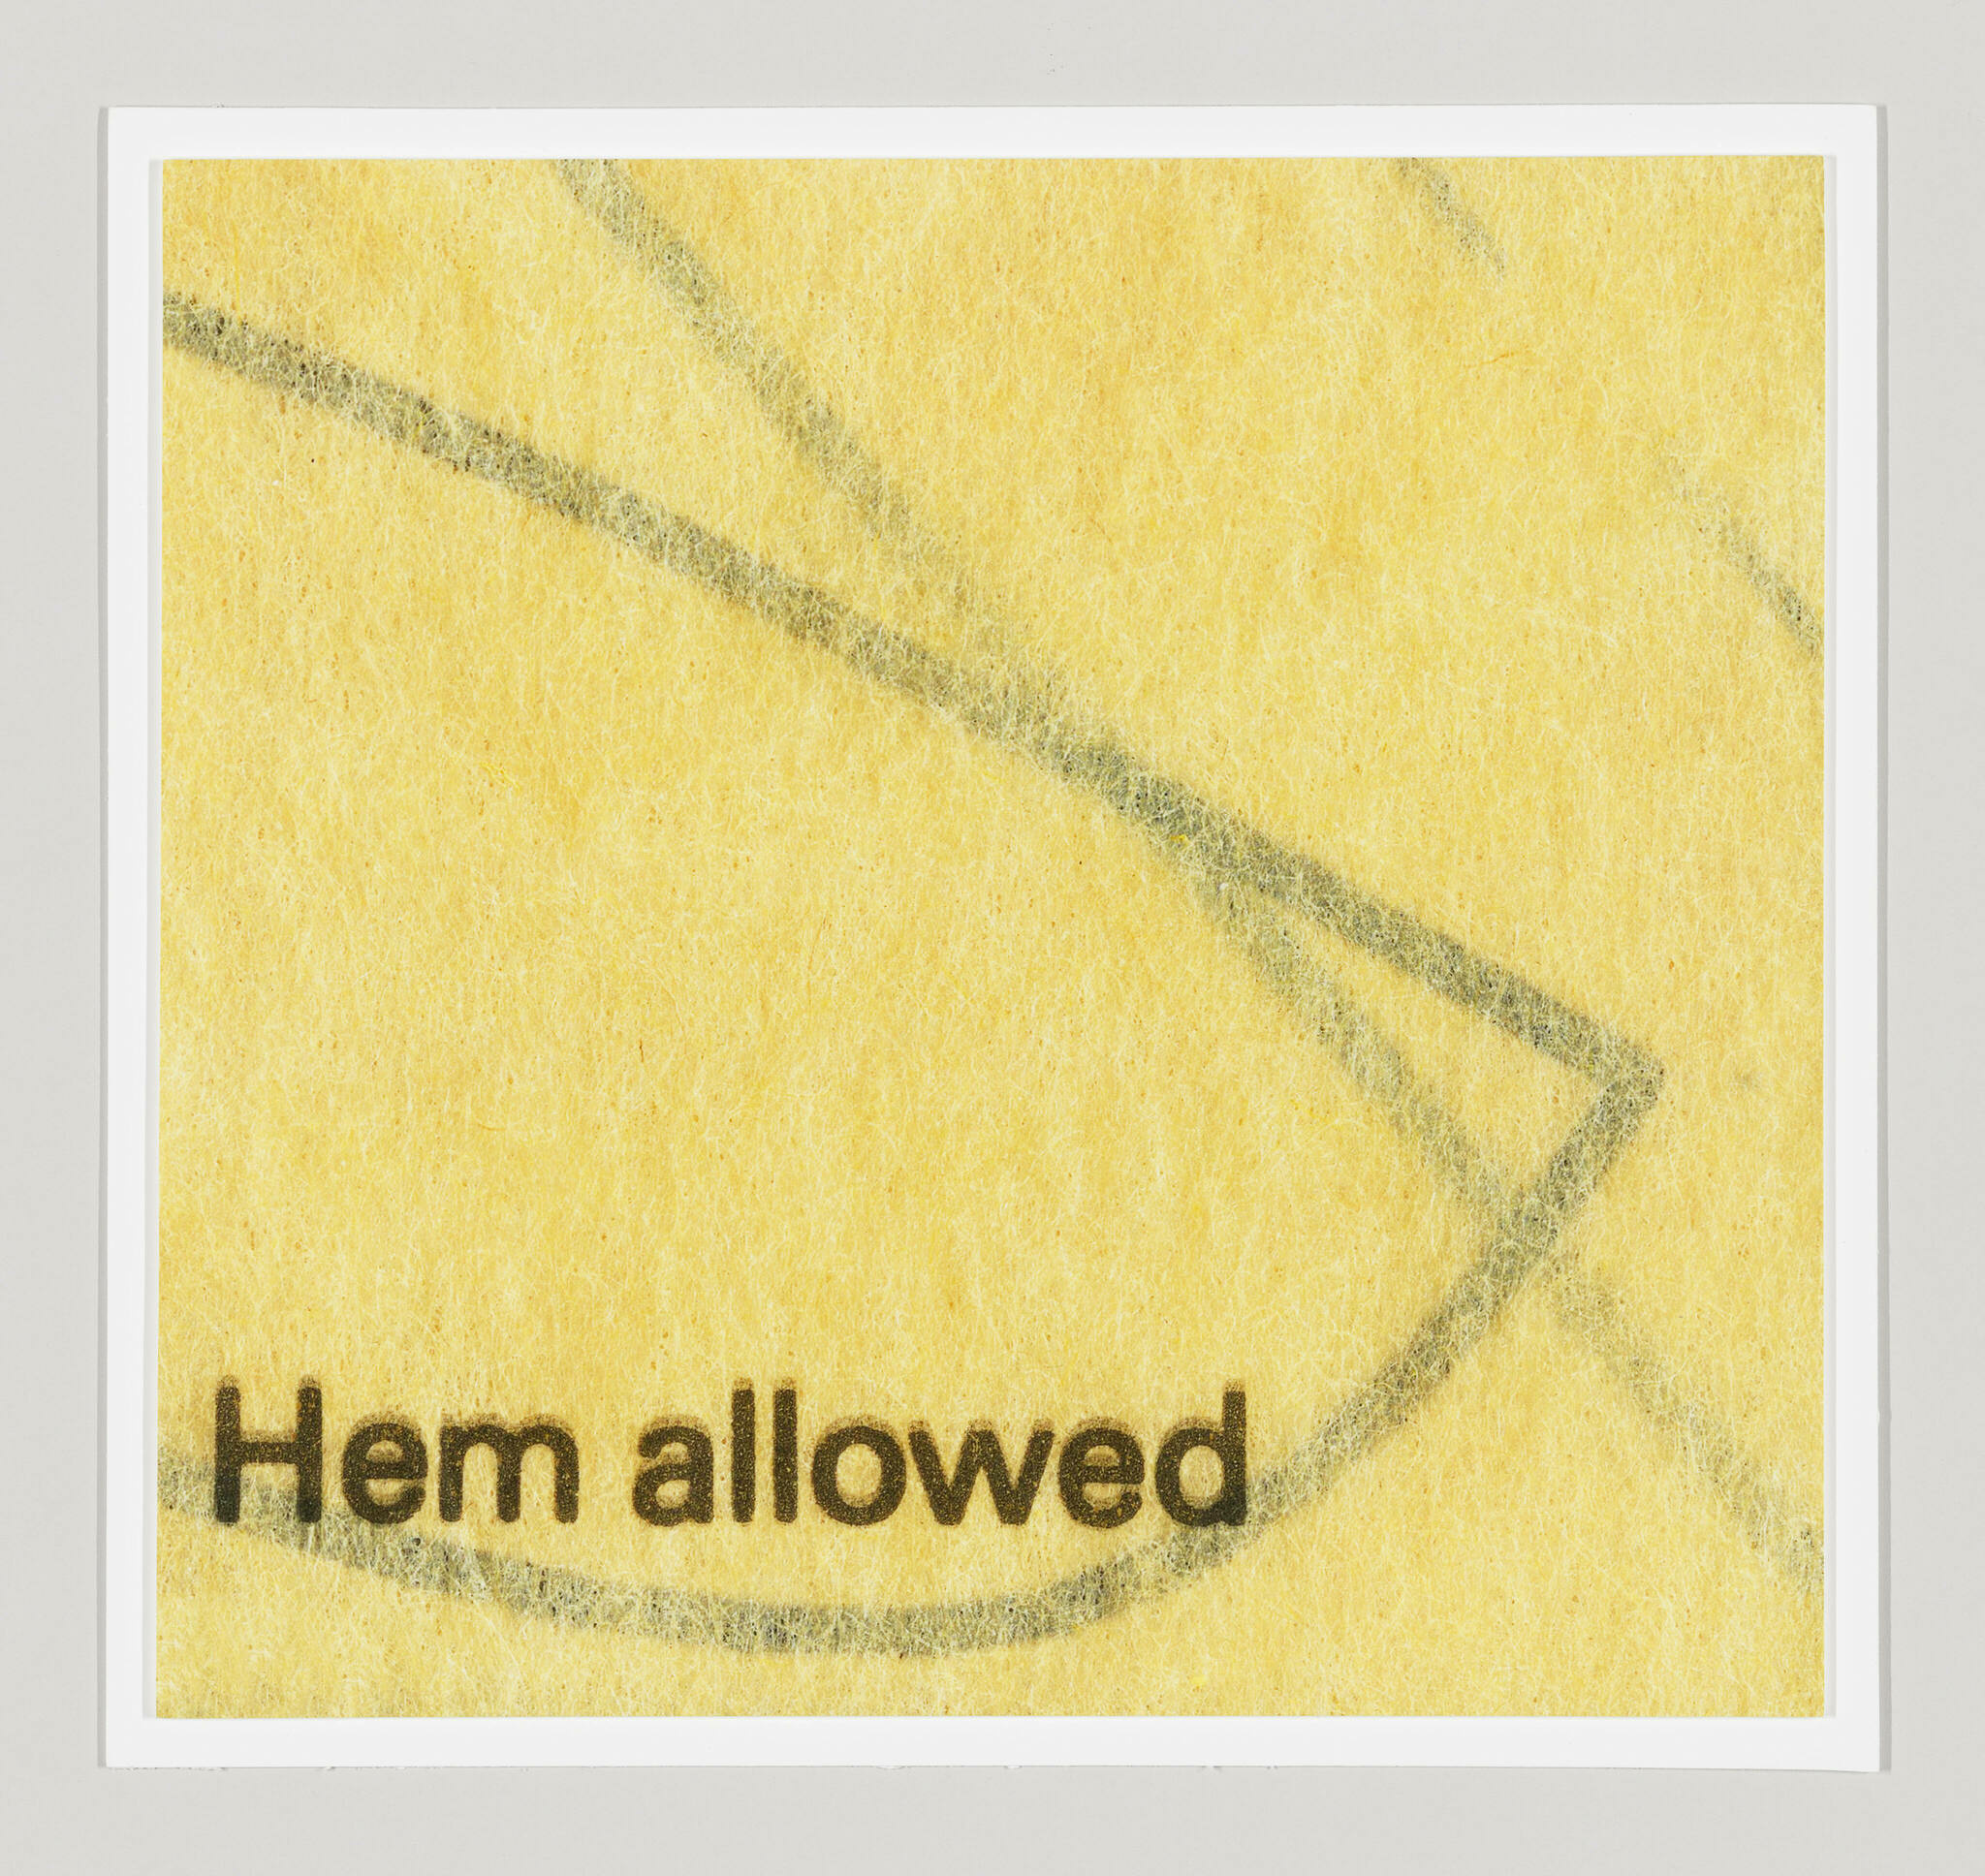 """The words """"Hem allowed"""" at the bottom and black lines tilting downward, crossing, and fading along a yellow background"""